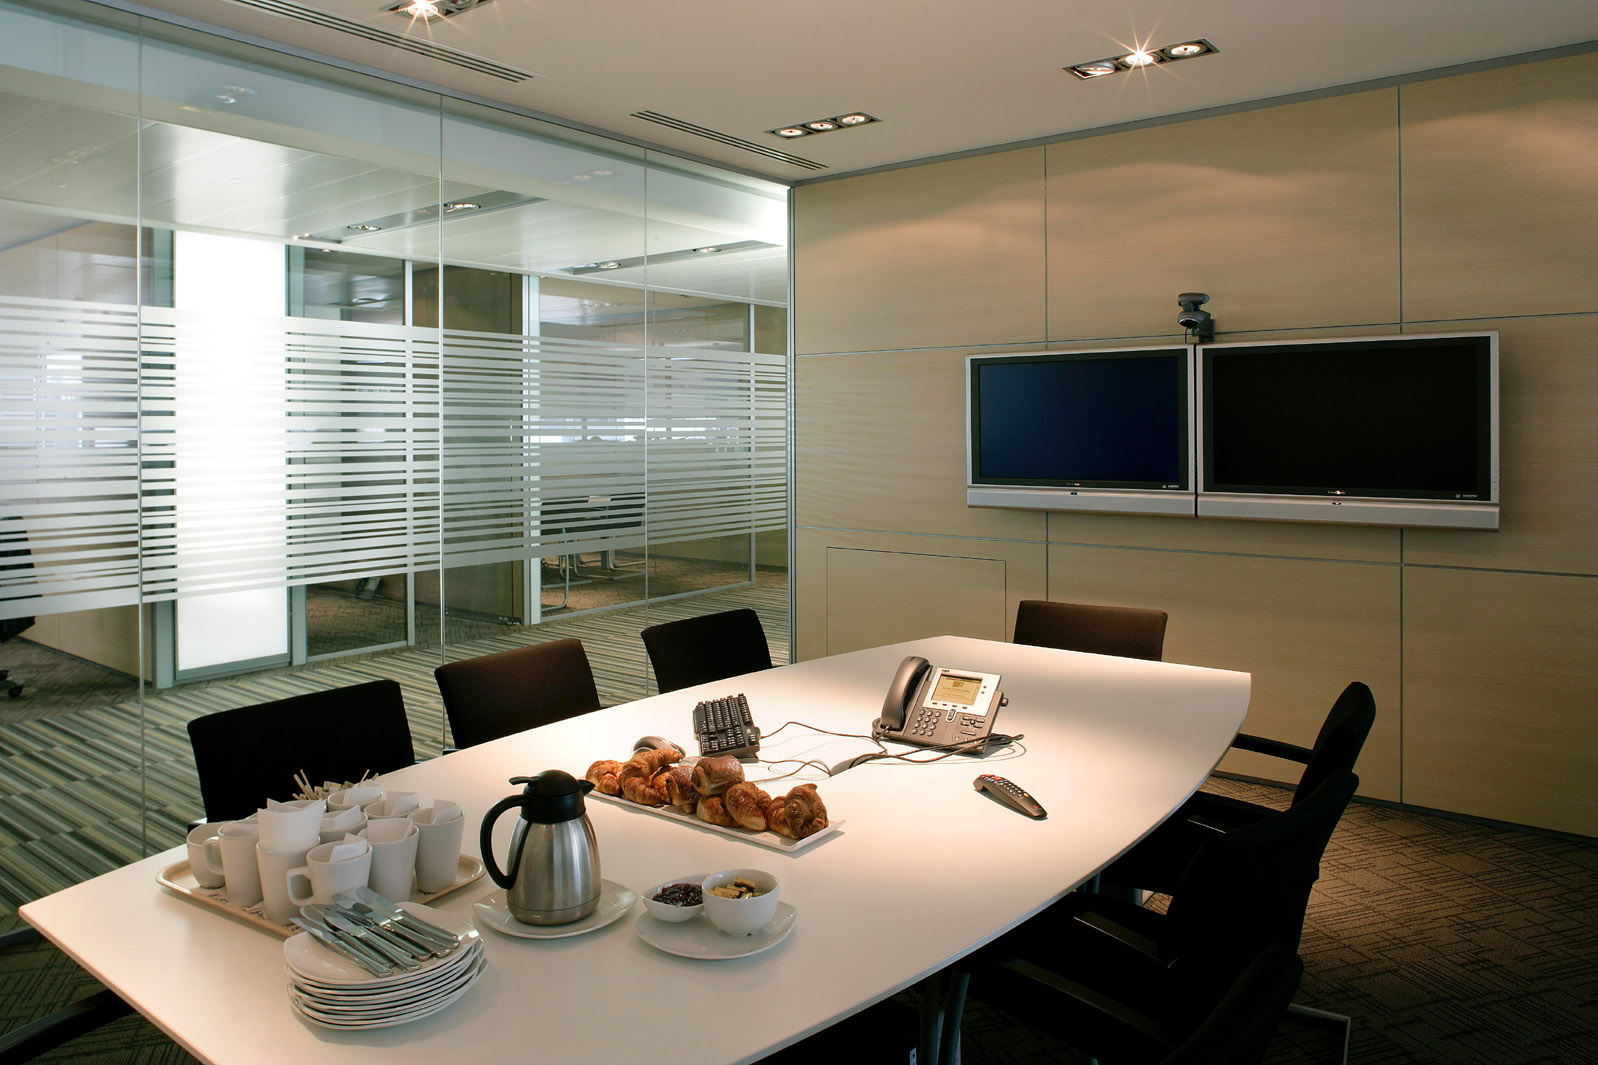 Awesome Meeting Room Interior In The Office: Modern Meeting Room With Glasses